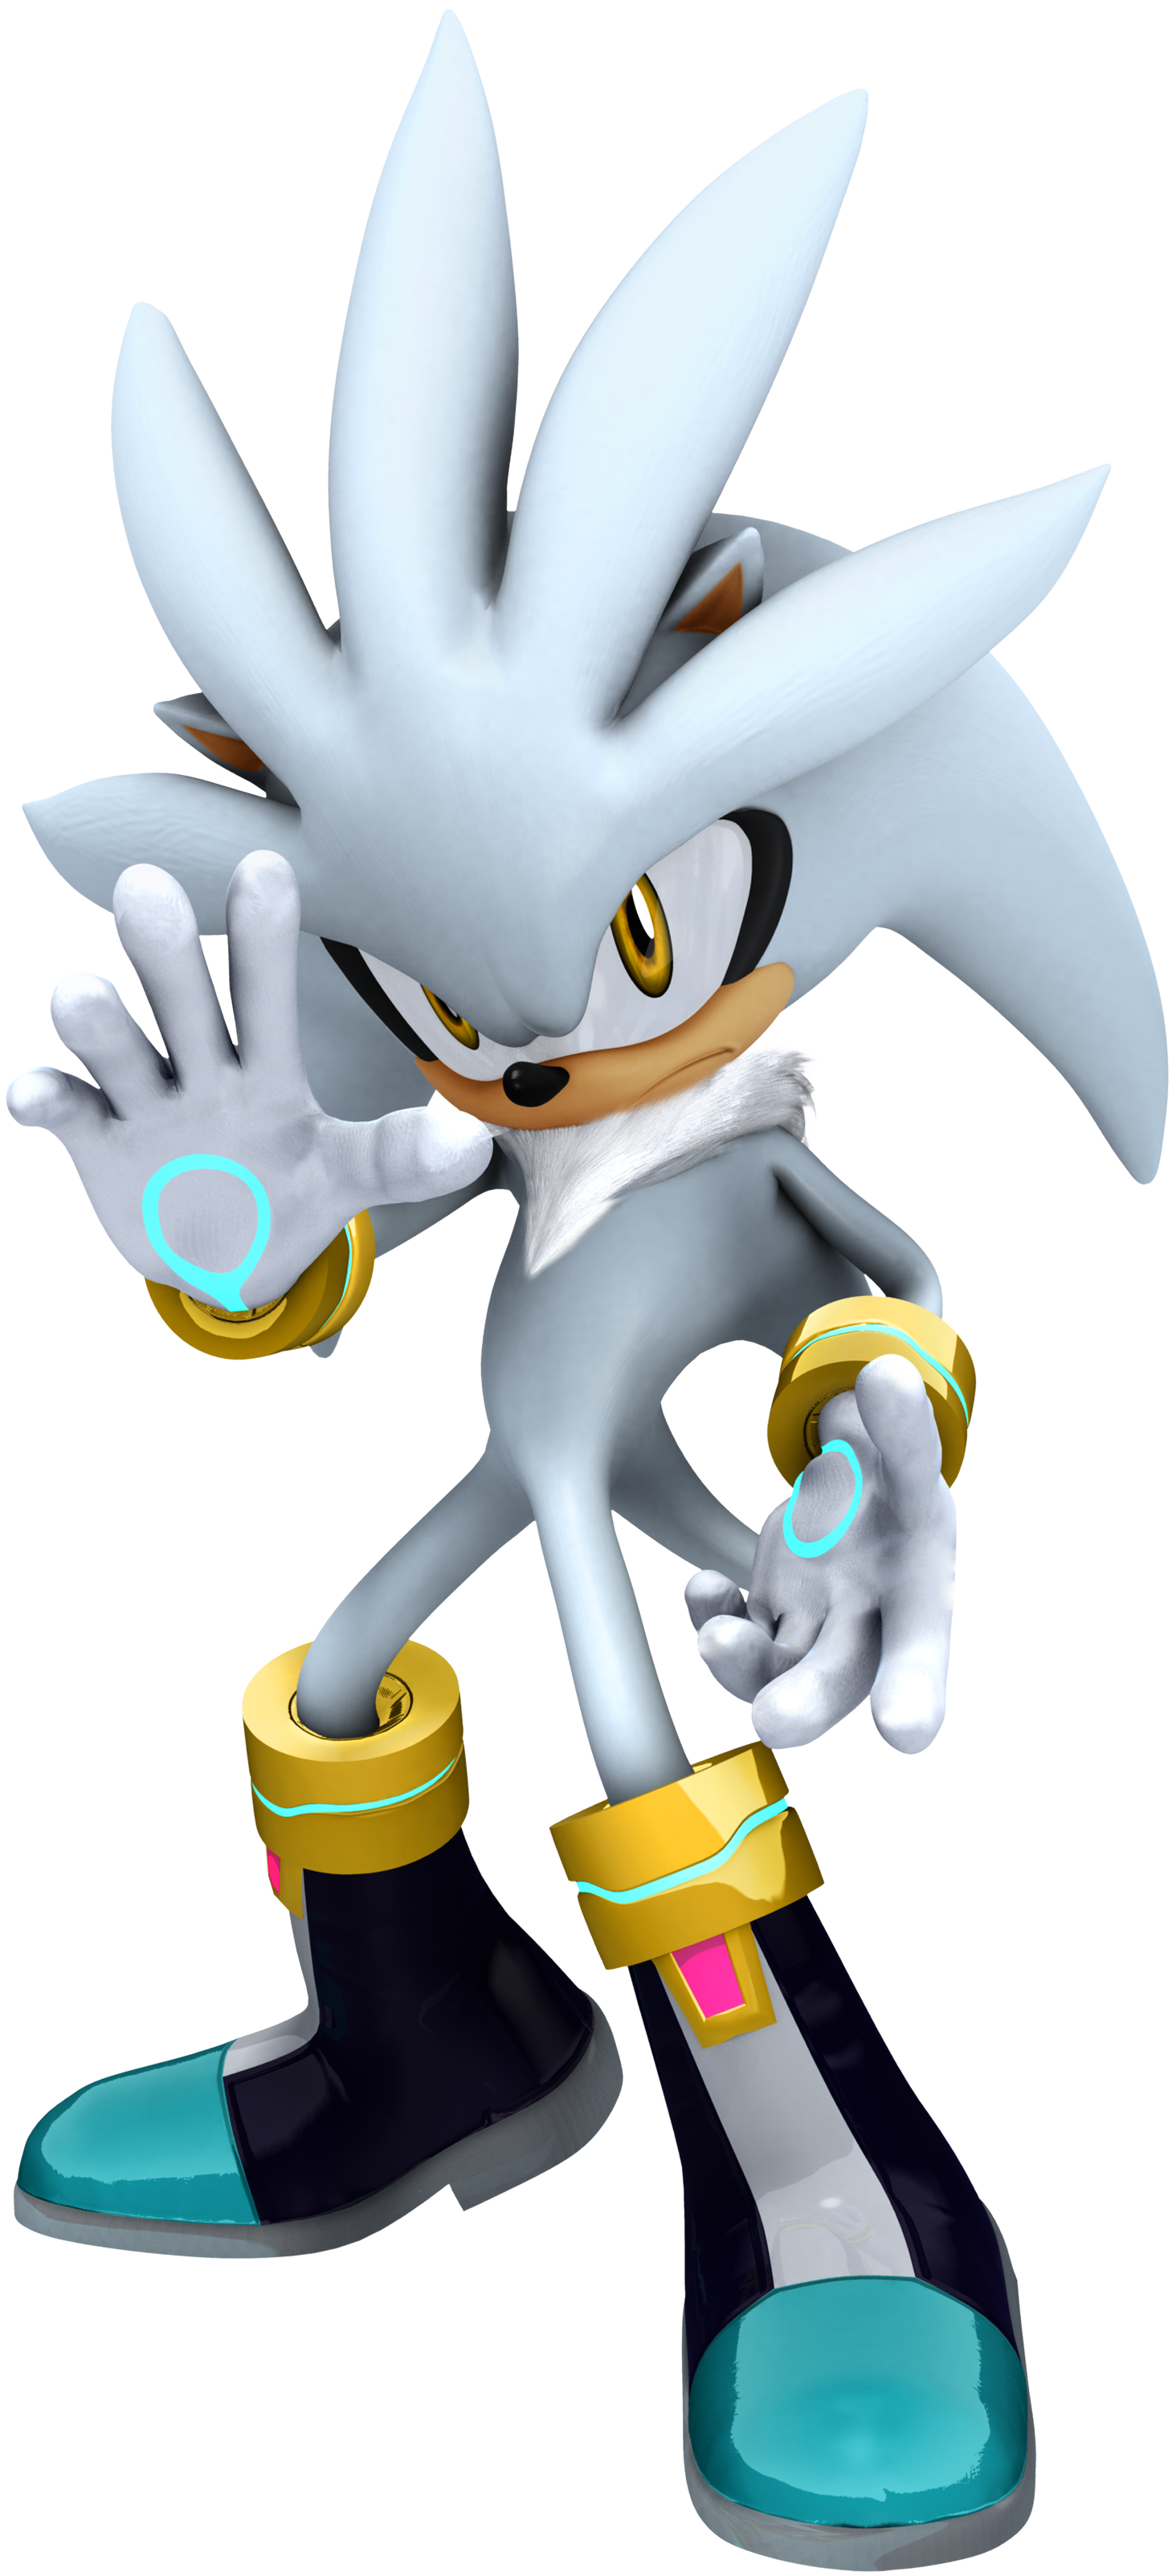 external image Sonic_the_Hedgehog_(2006).png